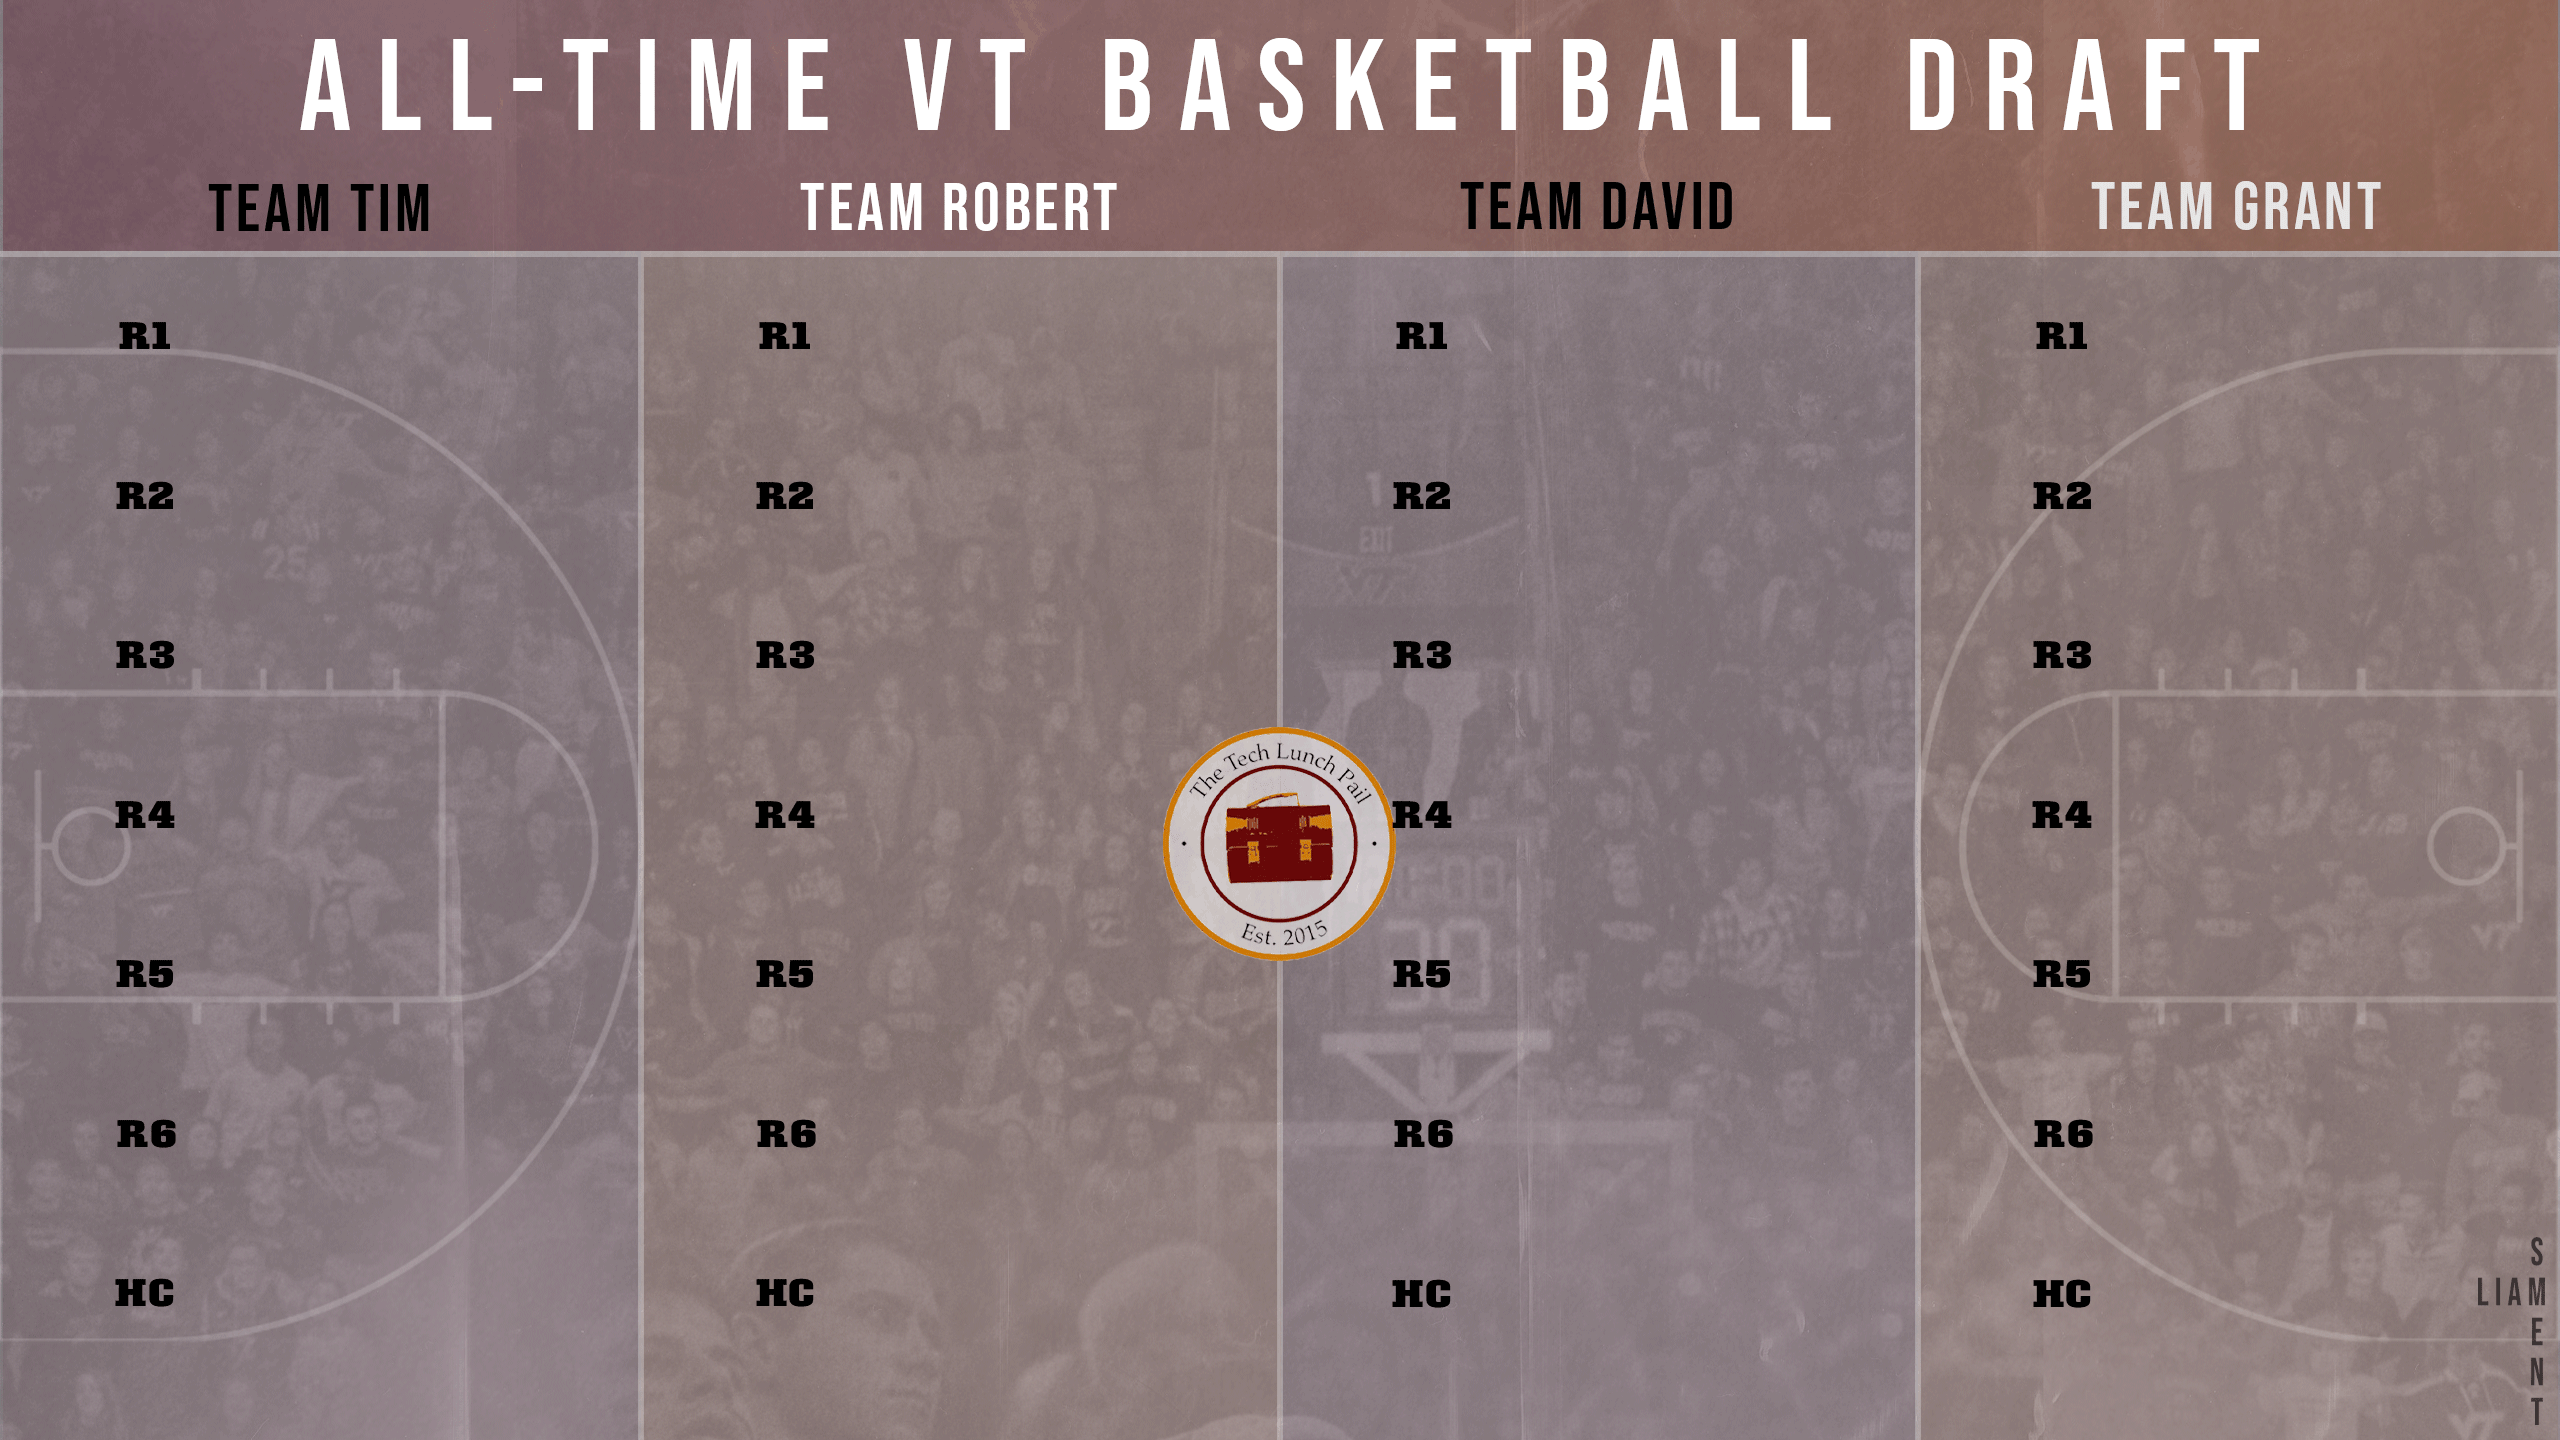 The All-Time Virginia Tech Basketball Draft Details